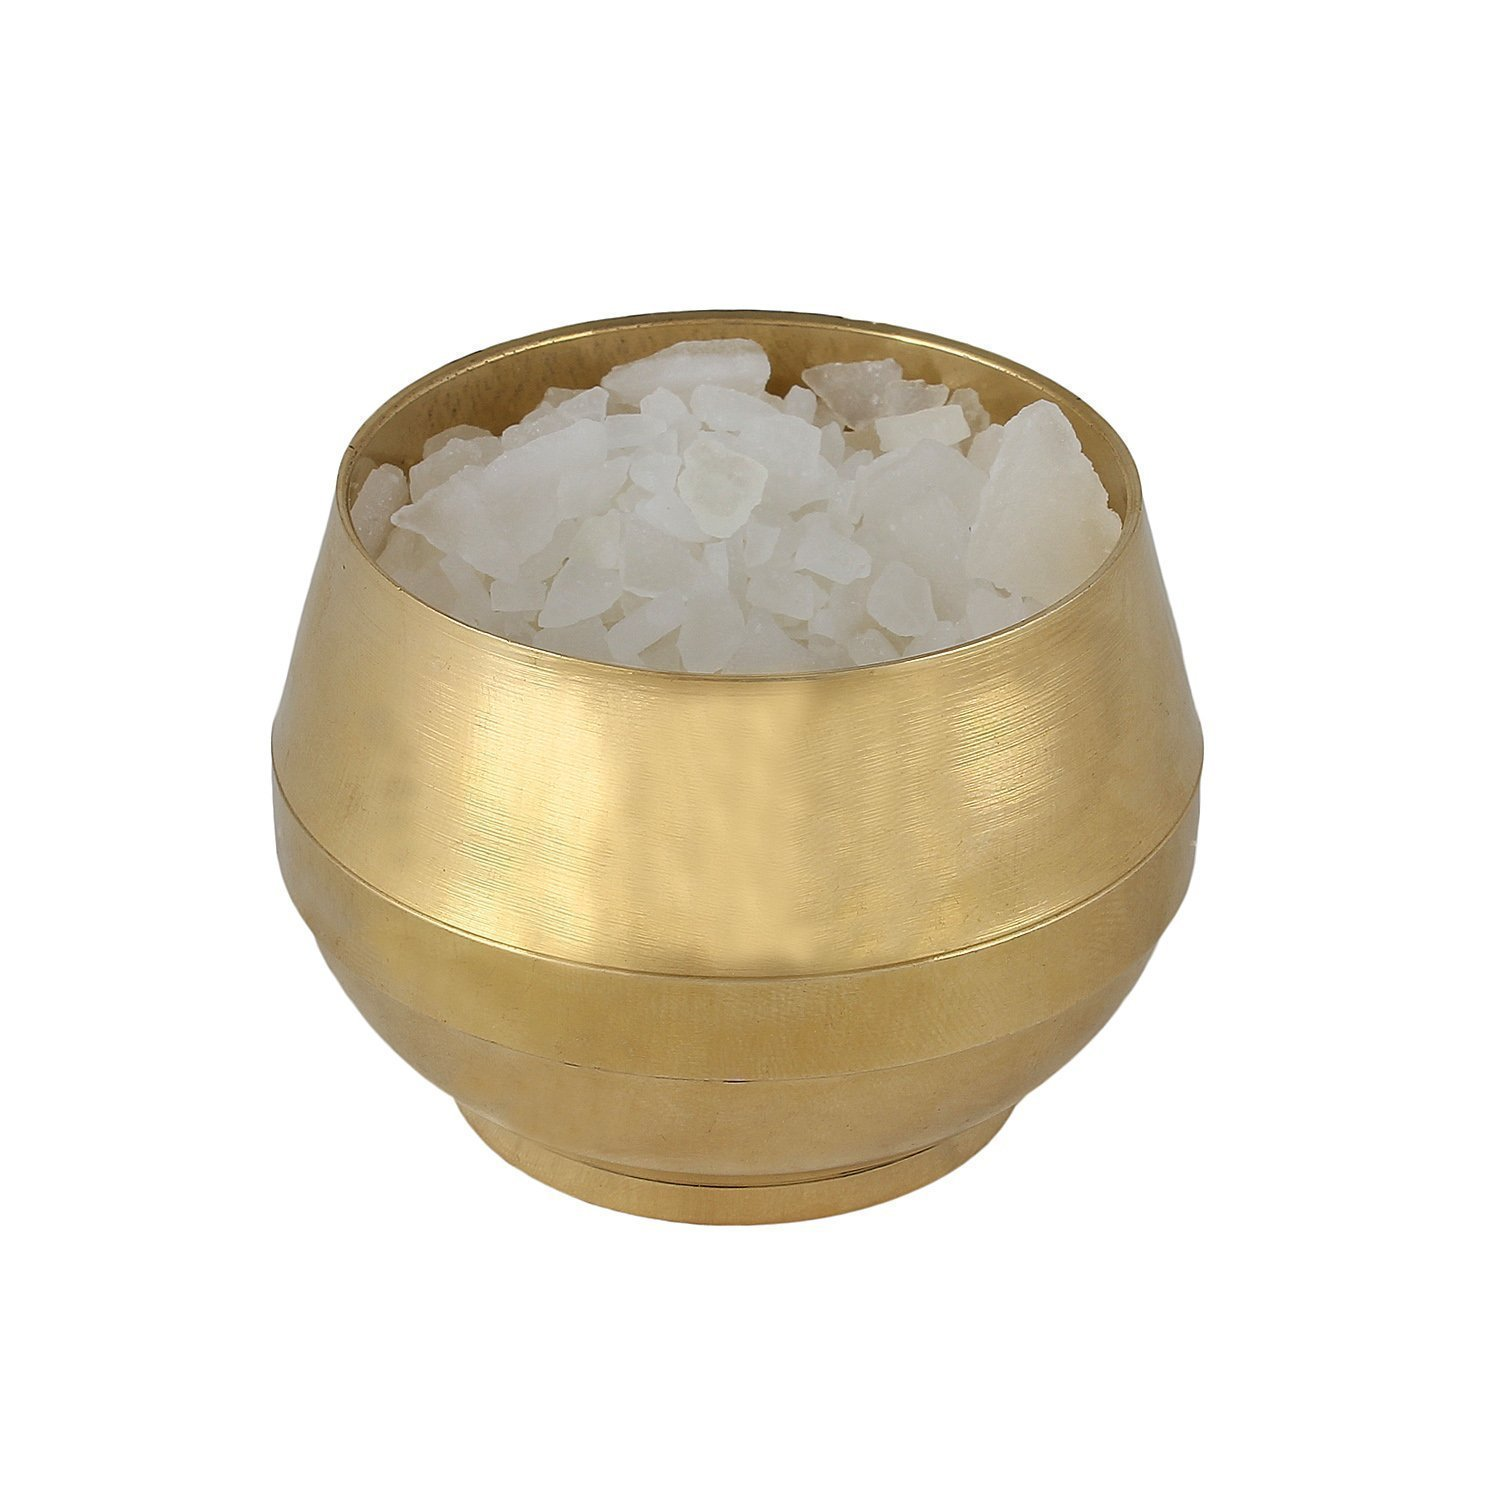 Odishabazaar Positive Aura Brass Camphor Lamp- Protect House From All Negative Energies (gold1)